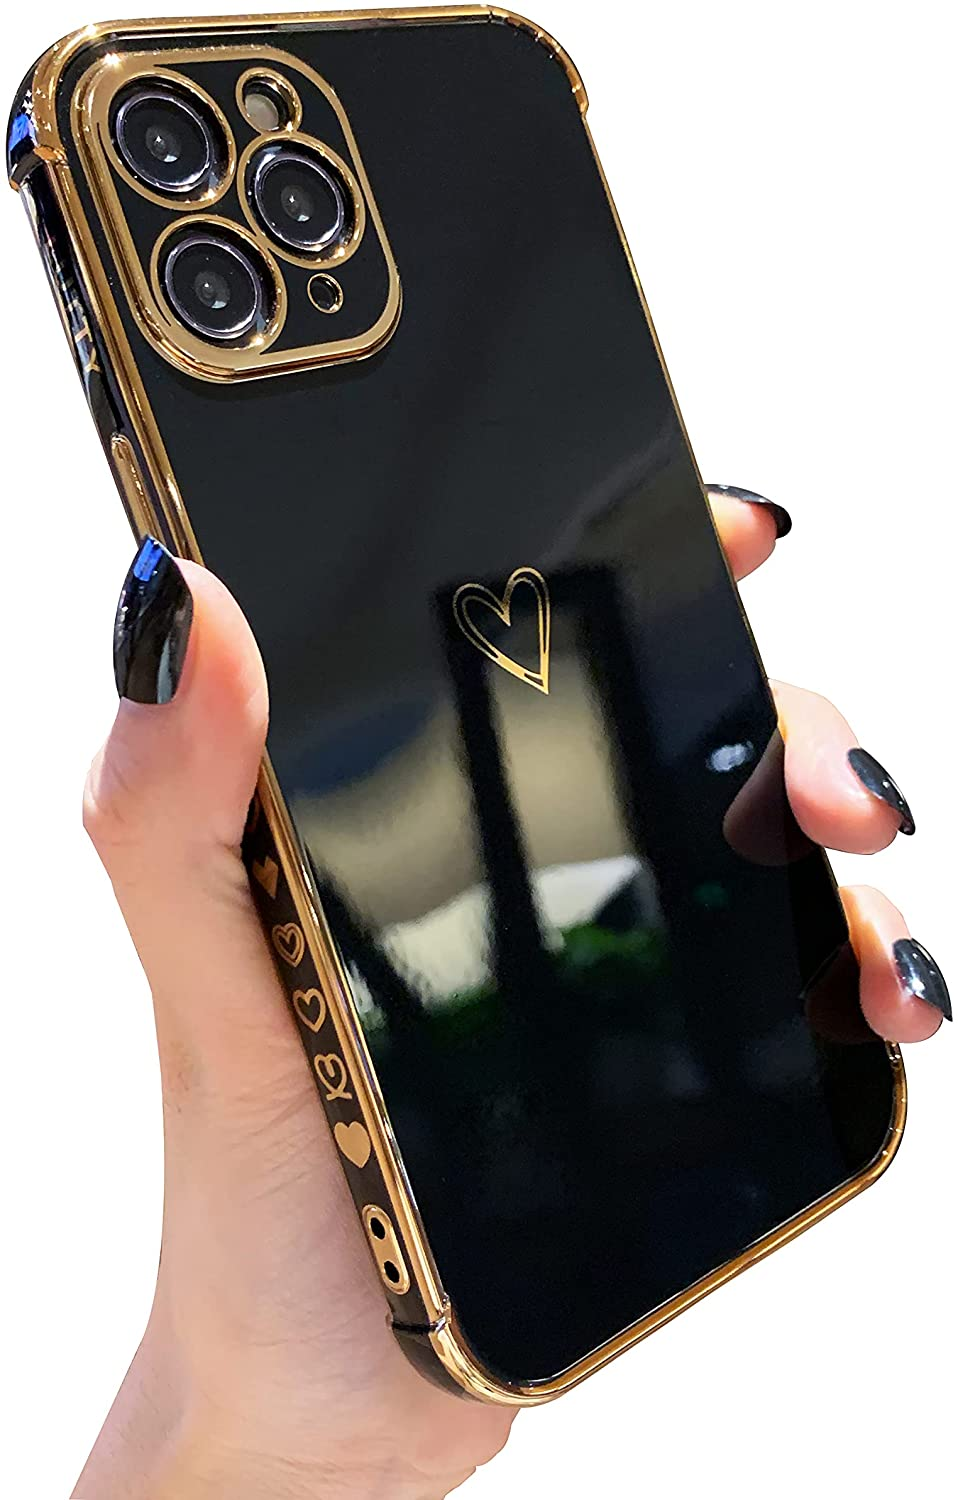 LUTTY Compatible with iPhone 11 Pro Max Case, Luxury Electroplate Edge Bumper Case for Women, Raised Full Camera Protection, Shockproof Reinforced Corners Soft TPU Case Cover (6.5 inch) -Candy Black